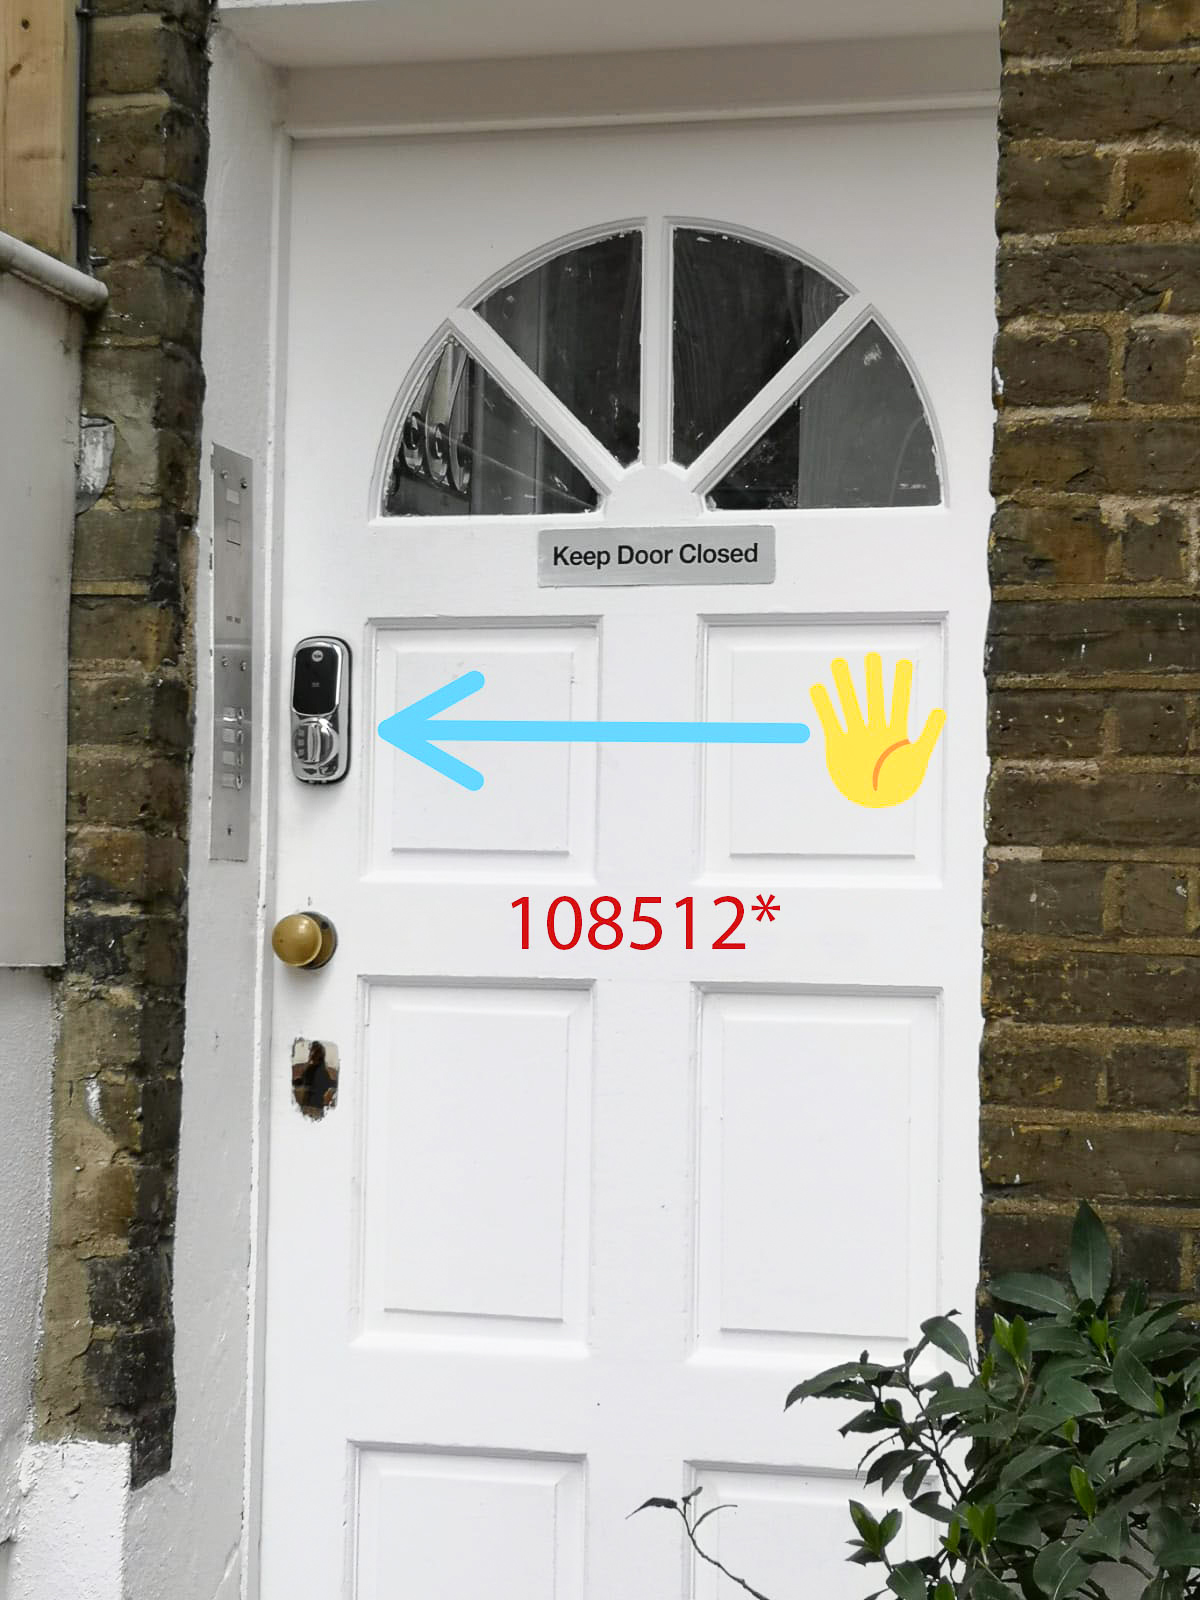 External door instructions - 1. Touch the PALM of your hand2. The screen lights will turn on. Insert code 108512*3. Press star * and turn the handle to open the door